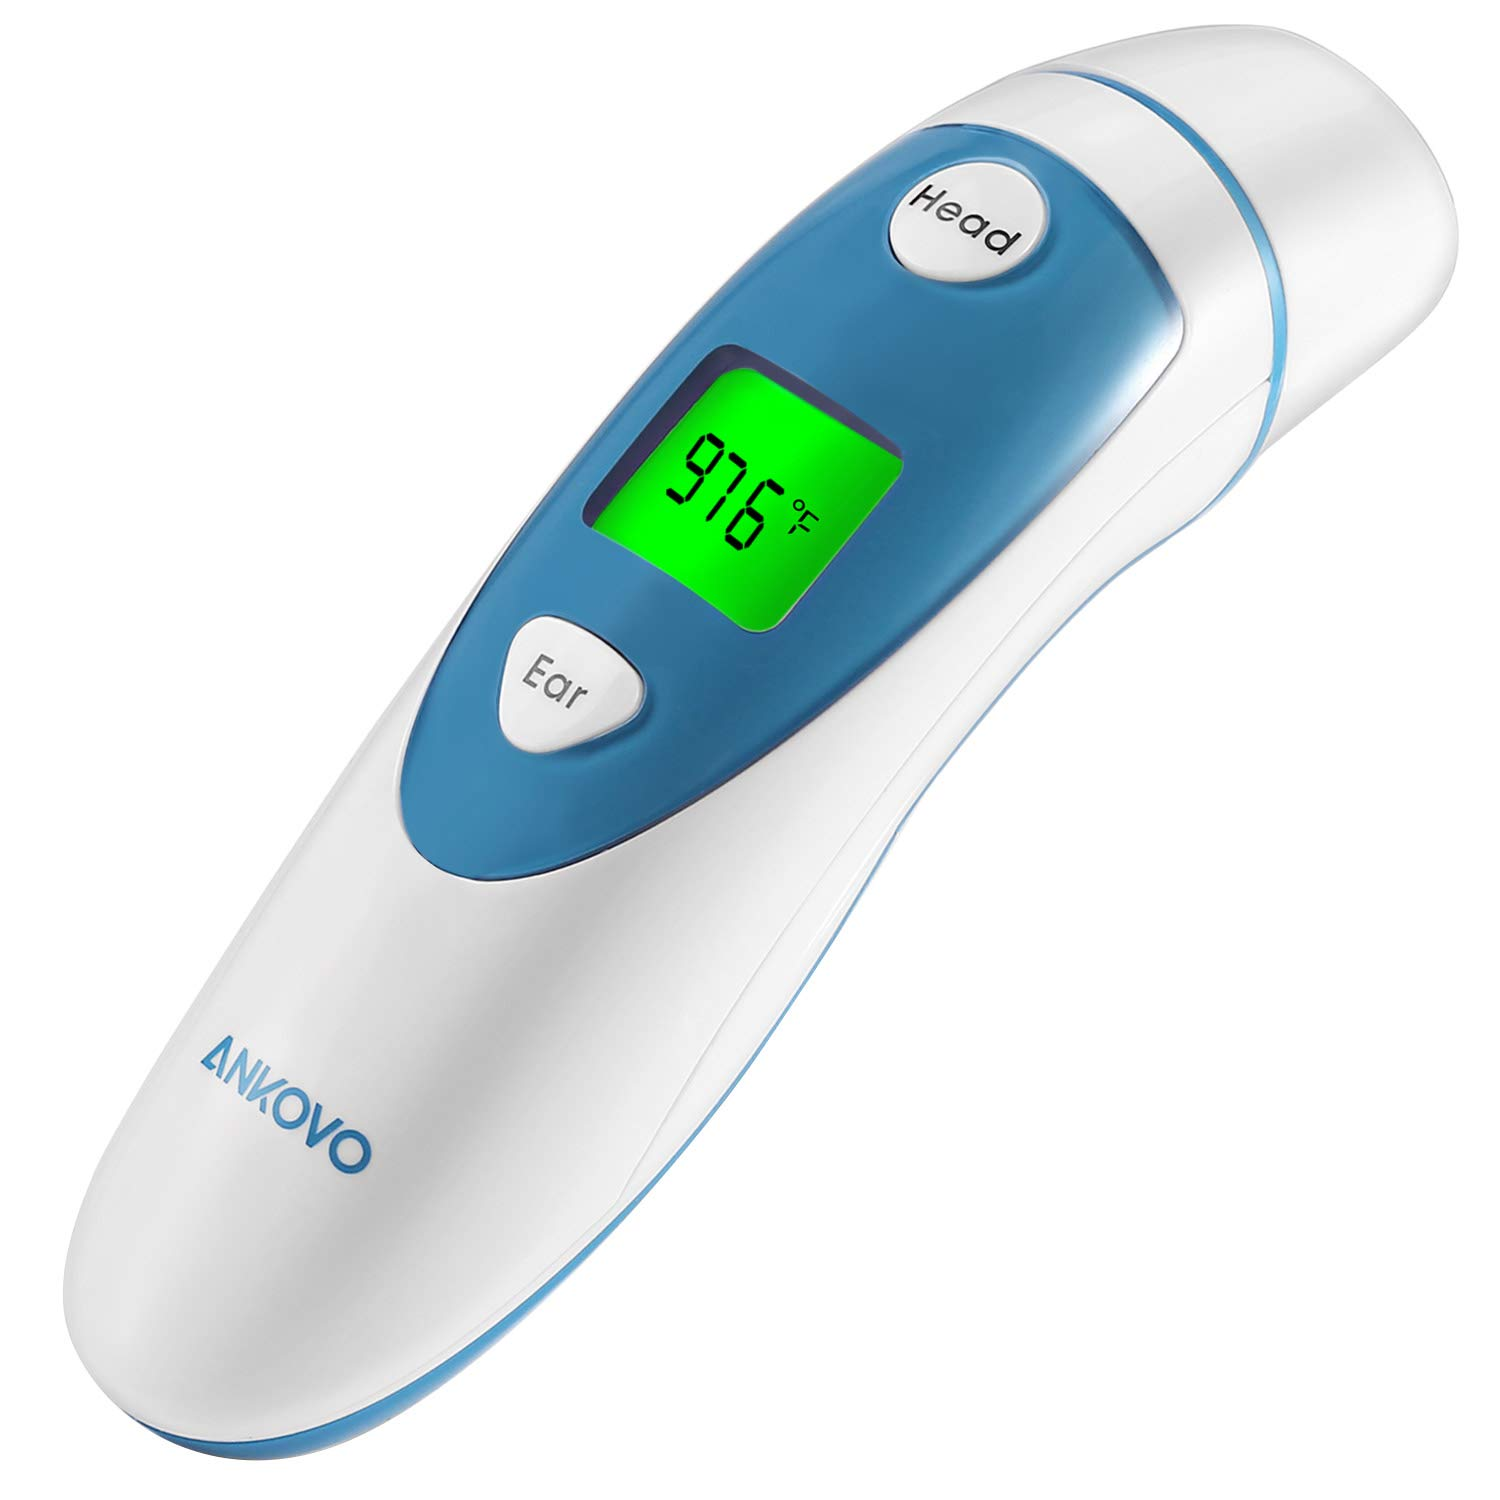 ANKOVO Thermometer for Fever Digital Medical Infrared Forehead and Ear Thermometer for Baby, Kids and Adults with Fever Indicator by ANKOVO